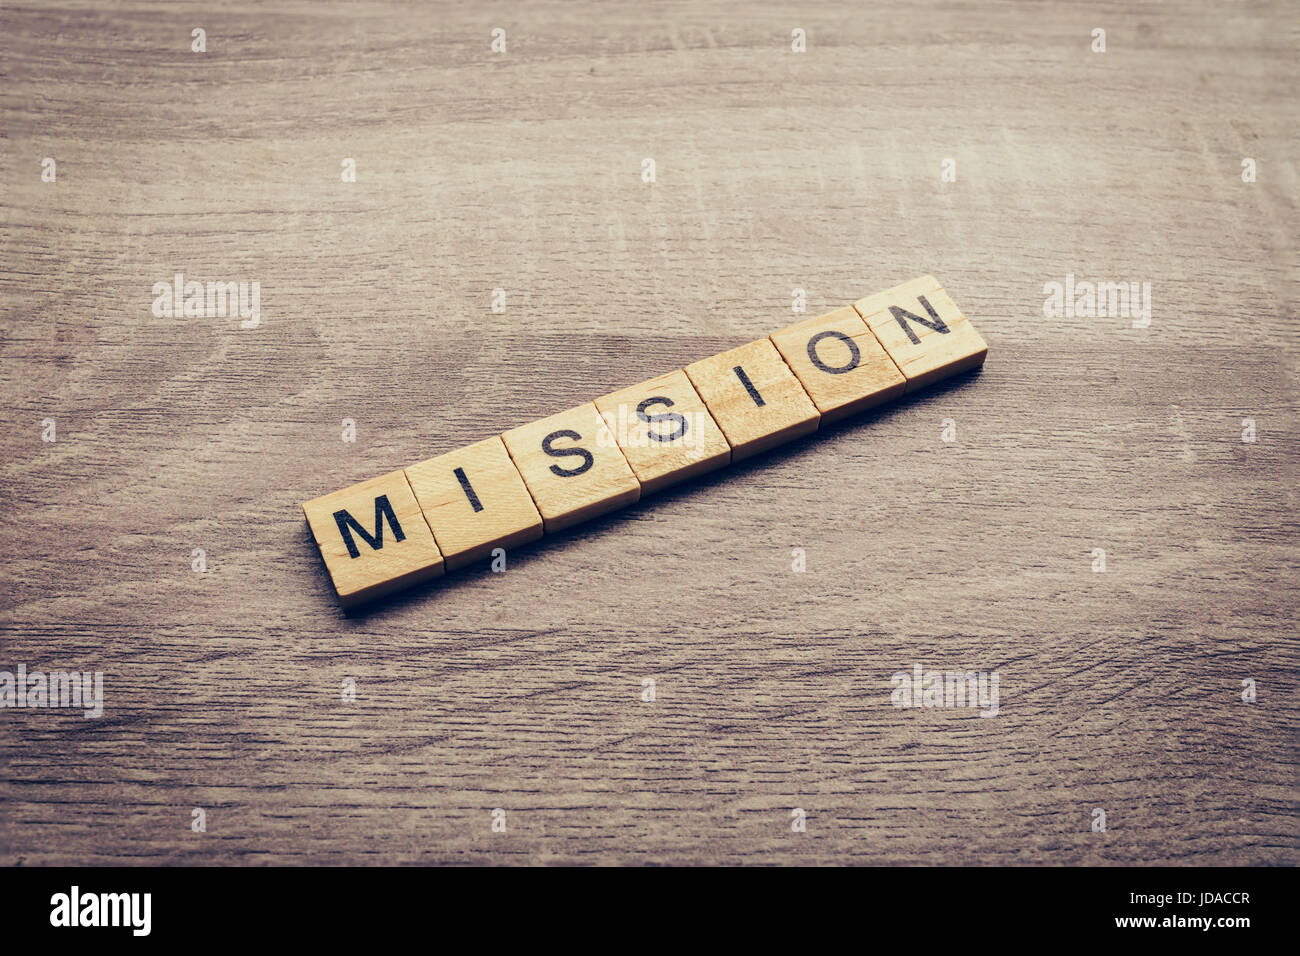 Mission word on wood table for business concept. - Stock Image